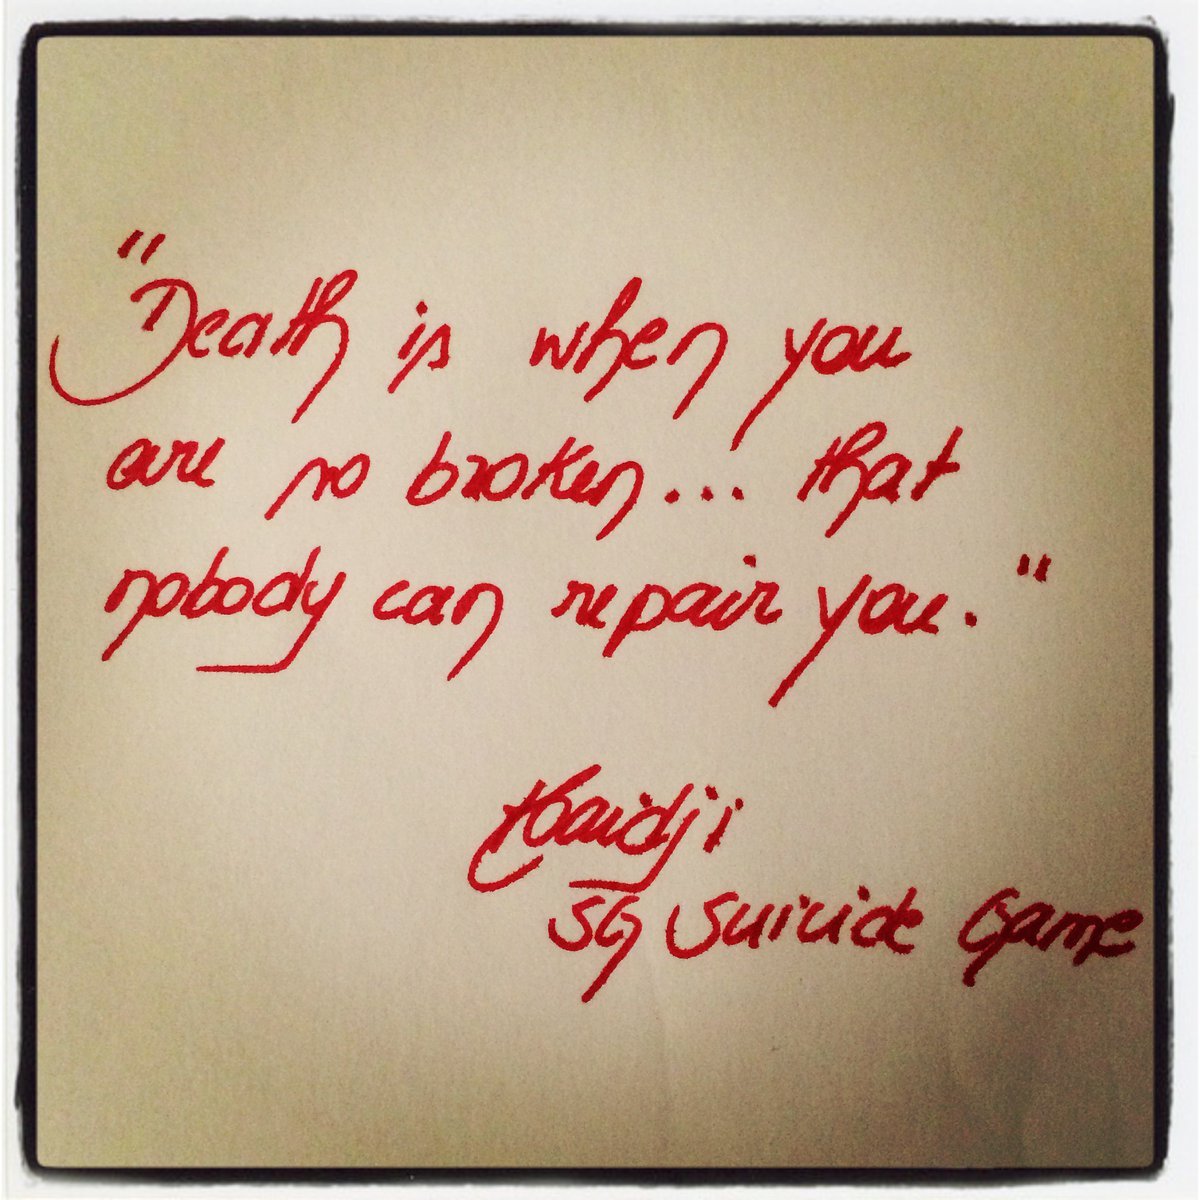 """Book Quote: """"Death is when you are so broken..."""" Click on  https://haidji.blogspot.com/2020/07/book-quote-death-is-when-you-are-so.html?spref=tw… #broken #life #death #quoteoftheday #dailyquote #reading #books #haidji #kindleunlimited #bookquotes #bookquote #goodreads #readers #readinglist #amazon #amazonbooks #bookpic.twitter.com/oVdA58Ppvf"""